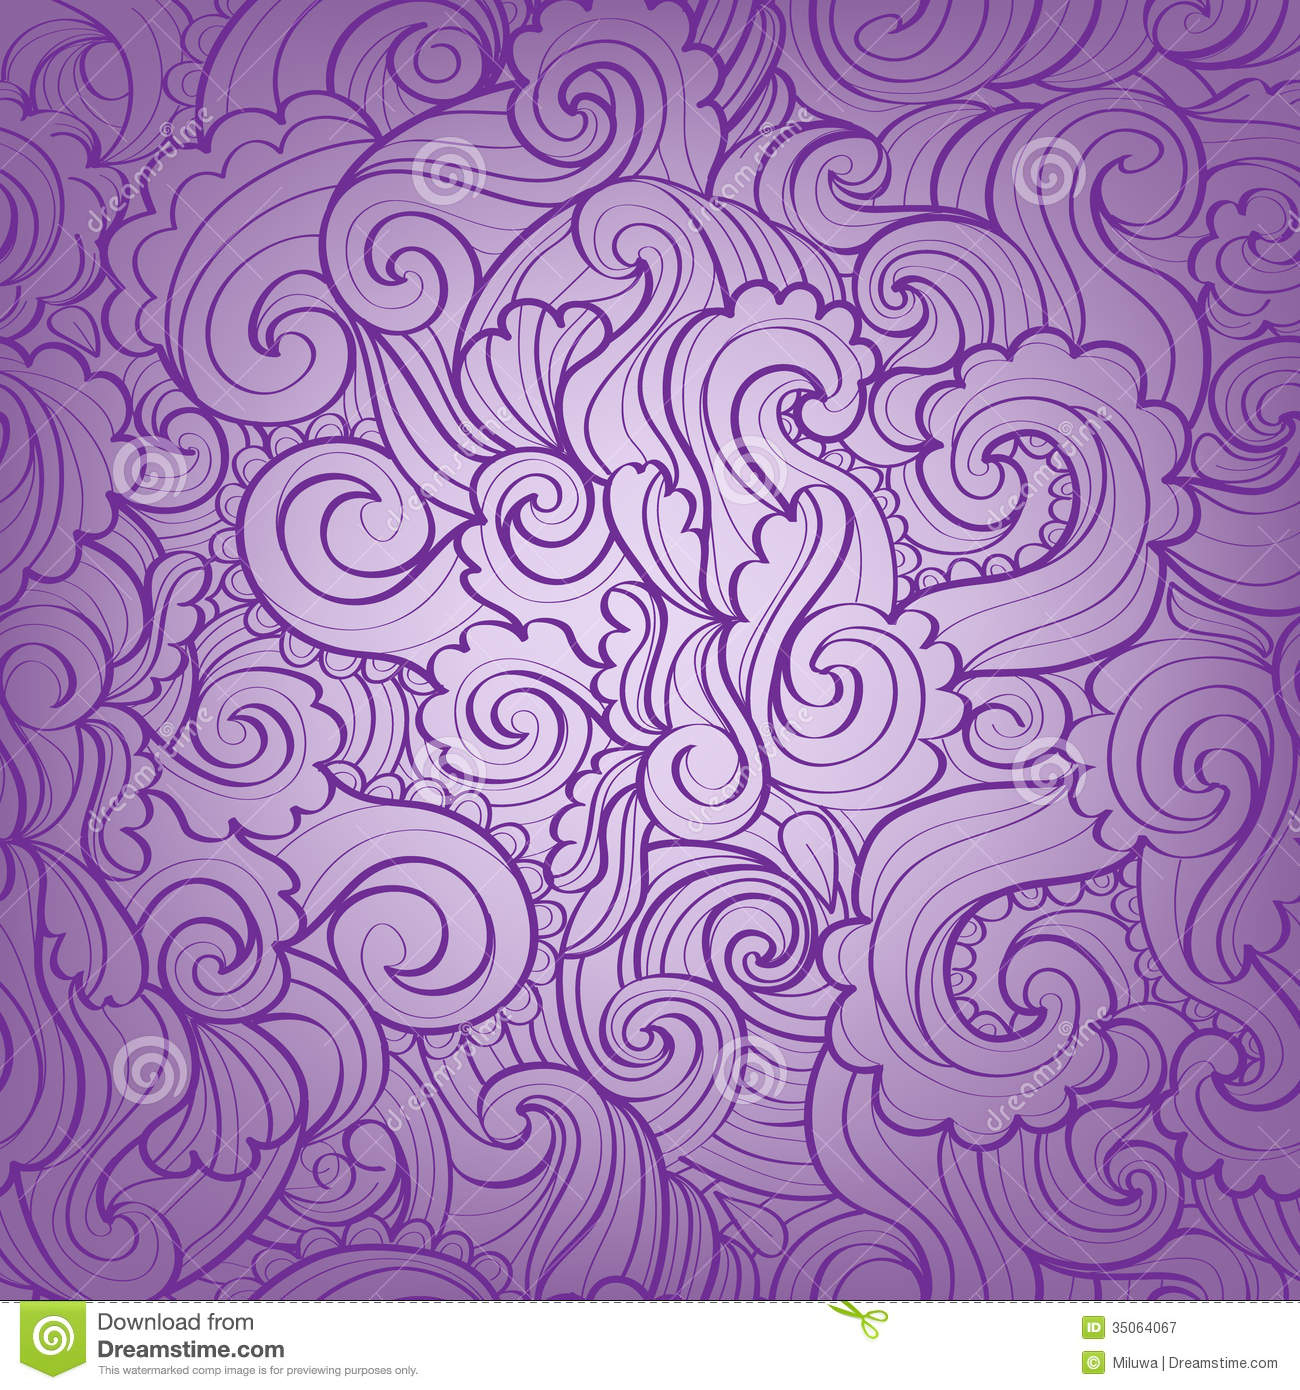 Printable Wallpaper Patterns - Wallpapersafari - Free Printable Wallpaper Patterns